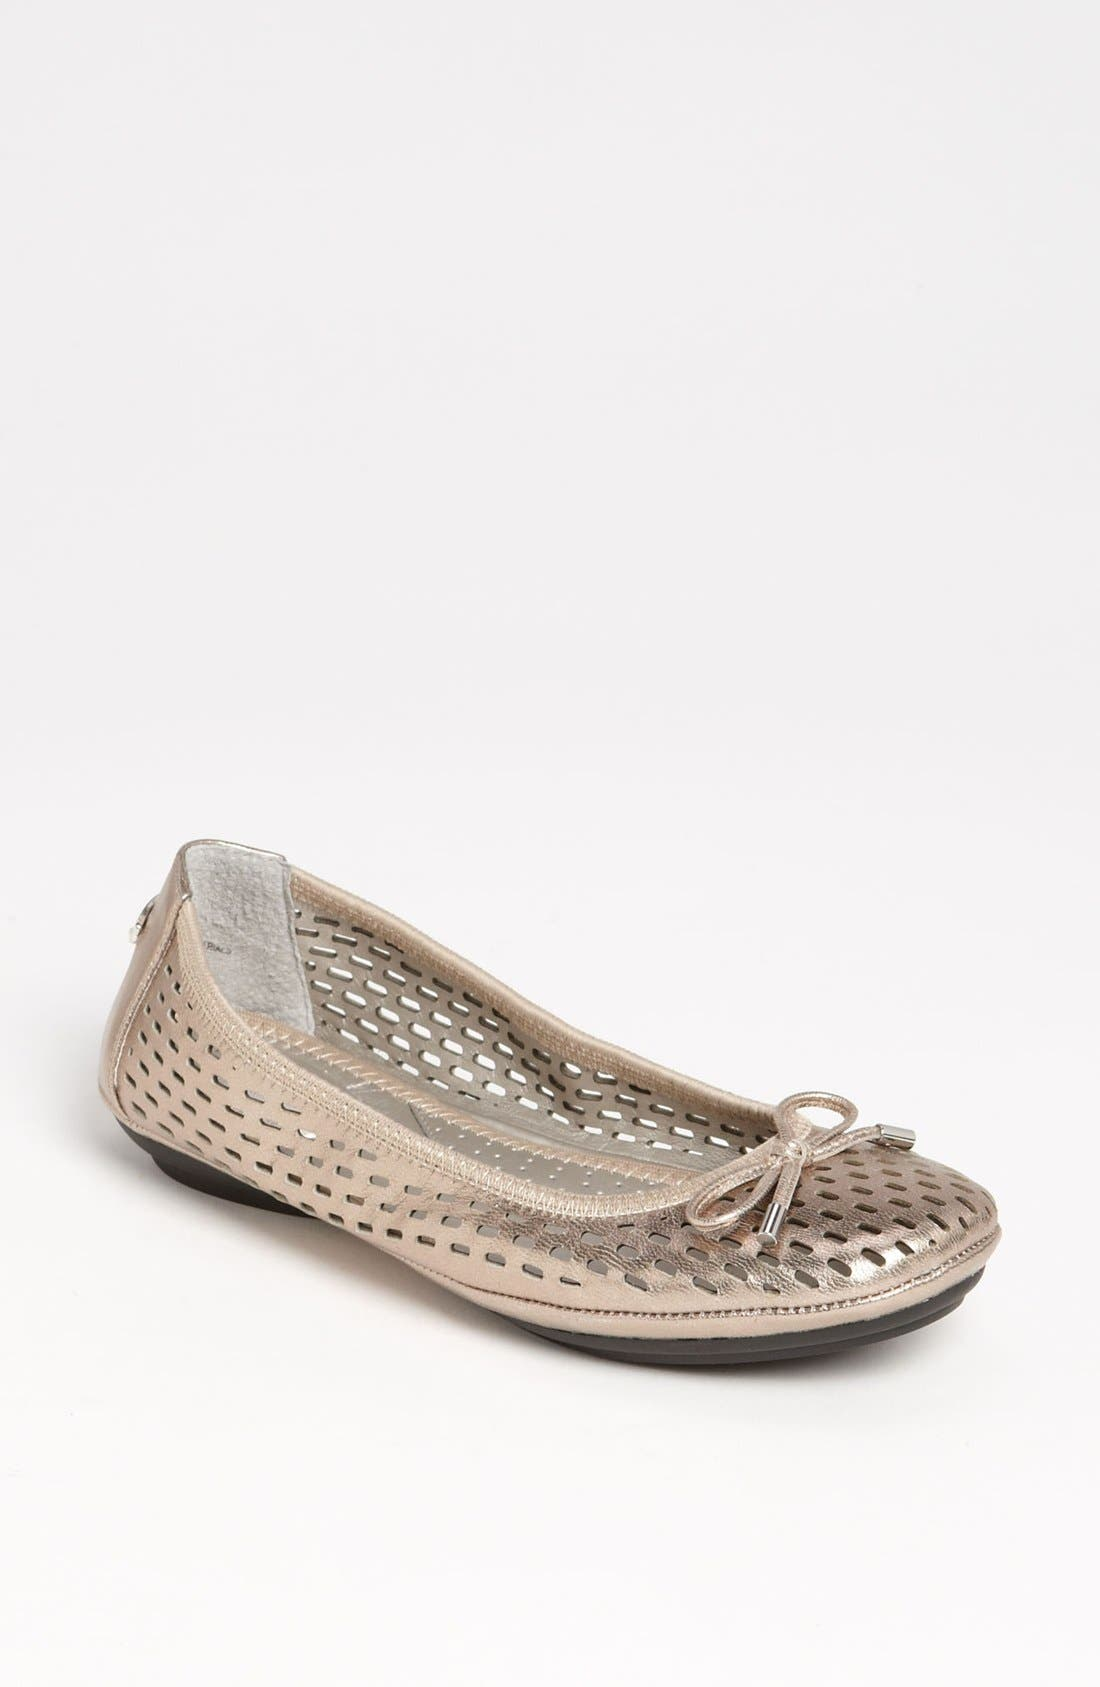 Alternate Image 1 Selected - Me Too 'Fayla' Flat (Special Purchase)